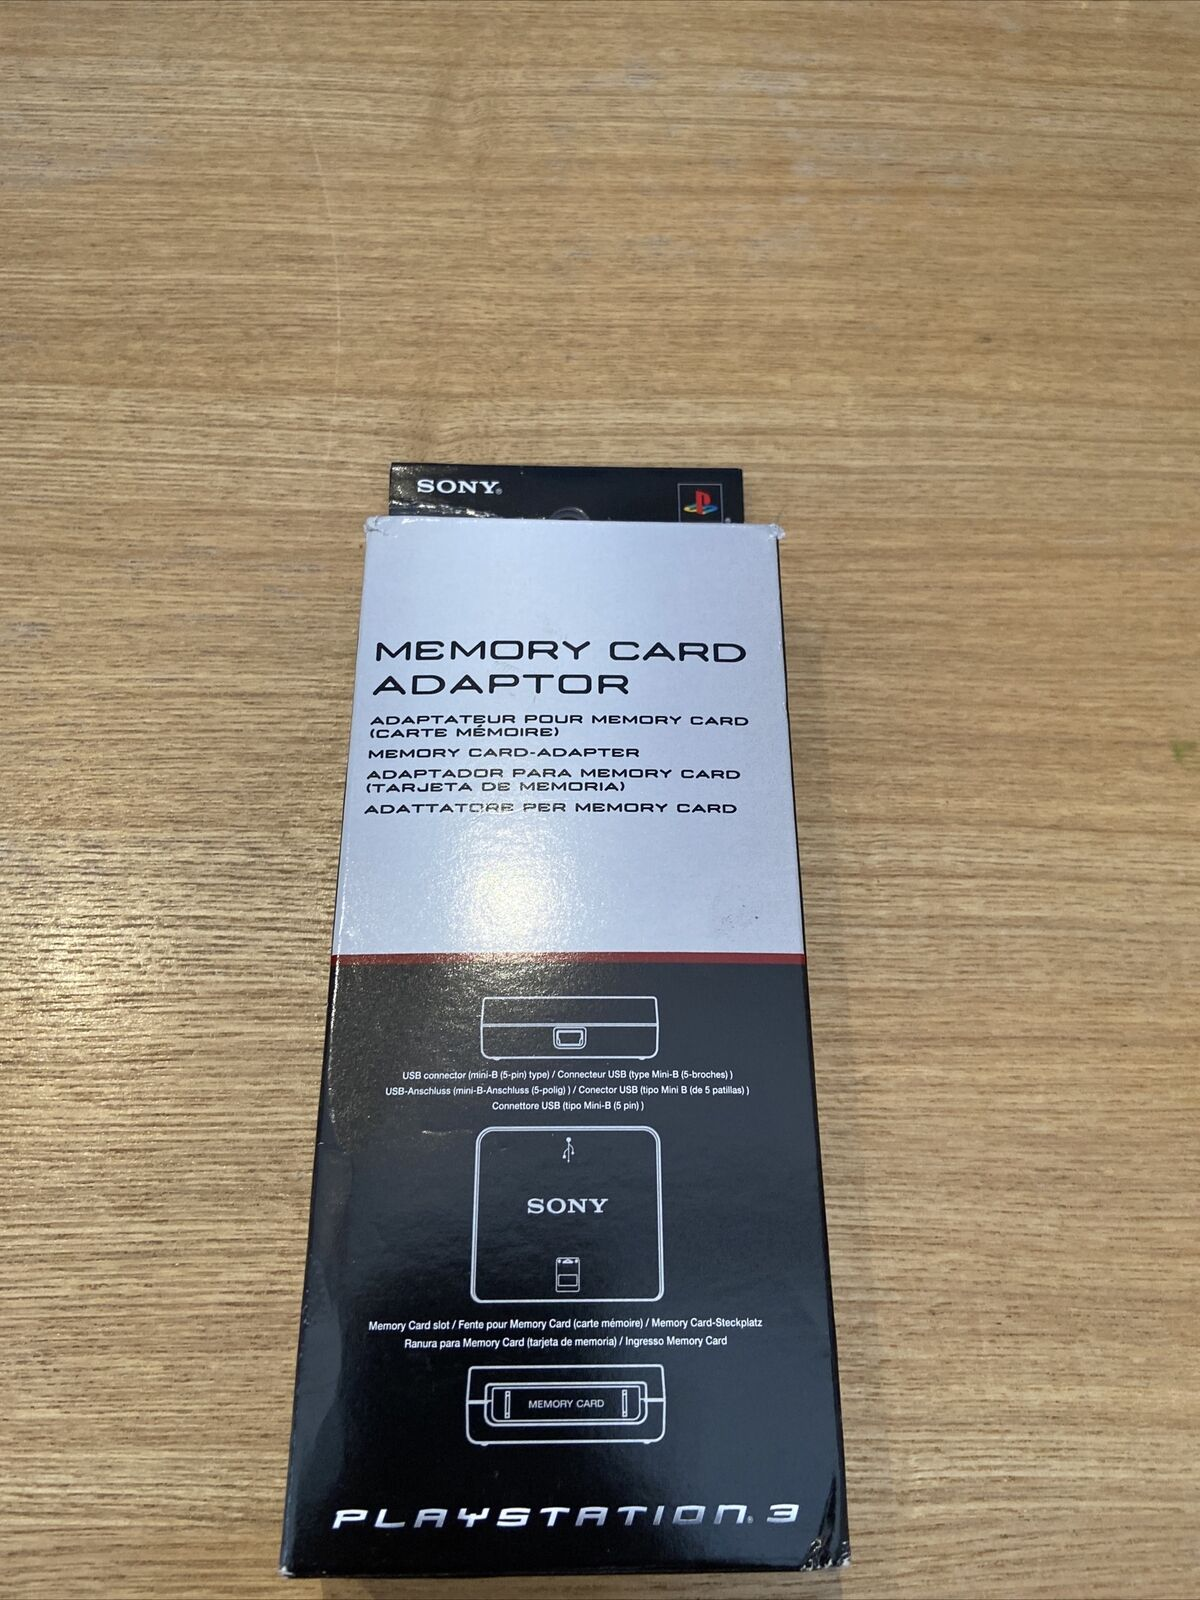 Boxed Official Playstation Memory Card Adapter - Playstation 3 (TESTED/WORKING)